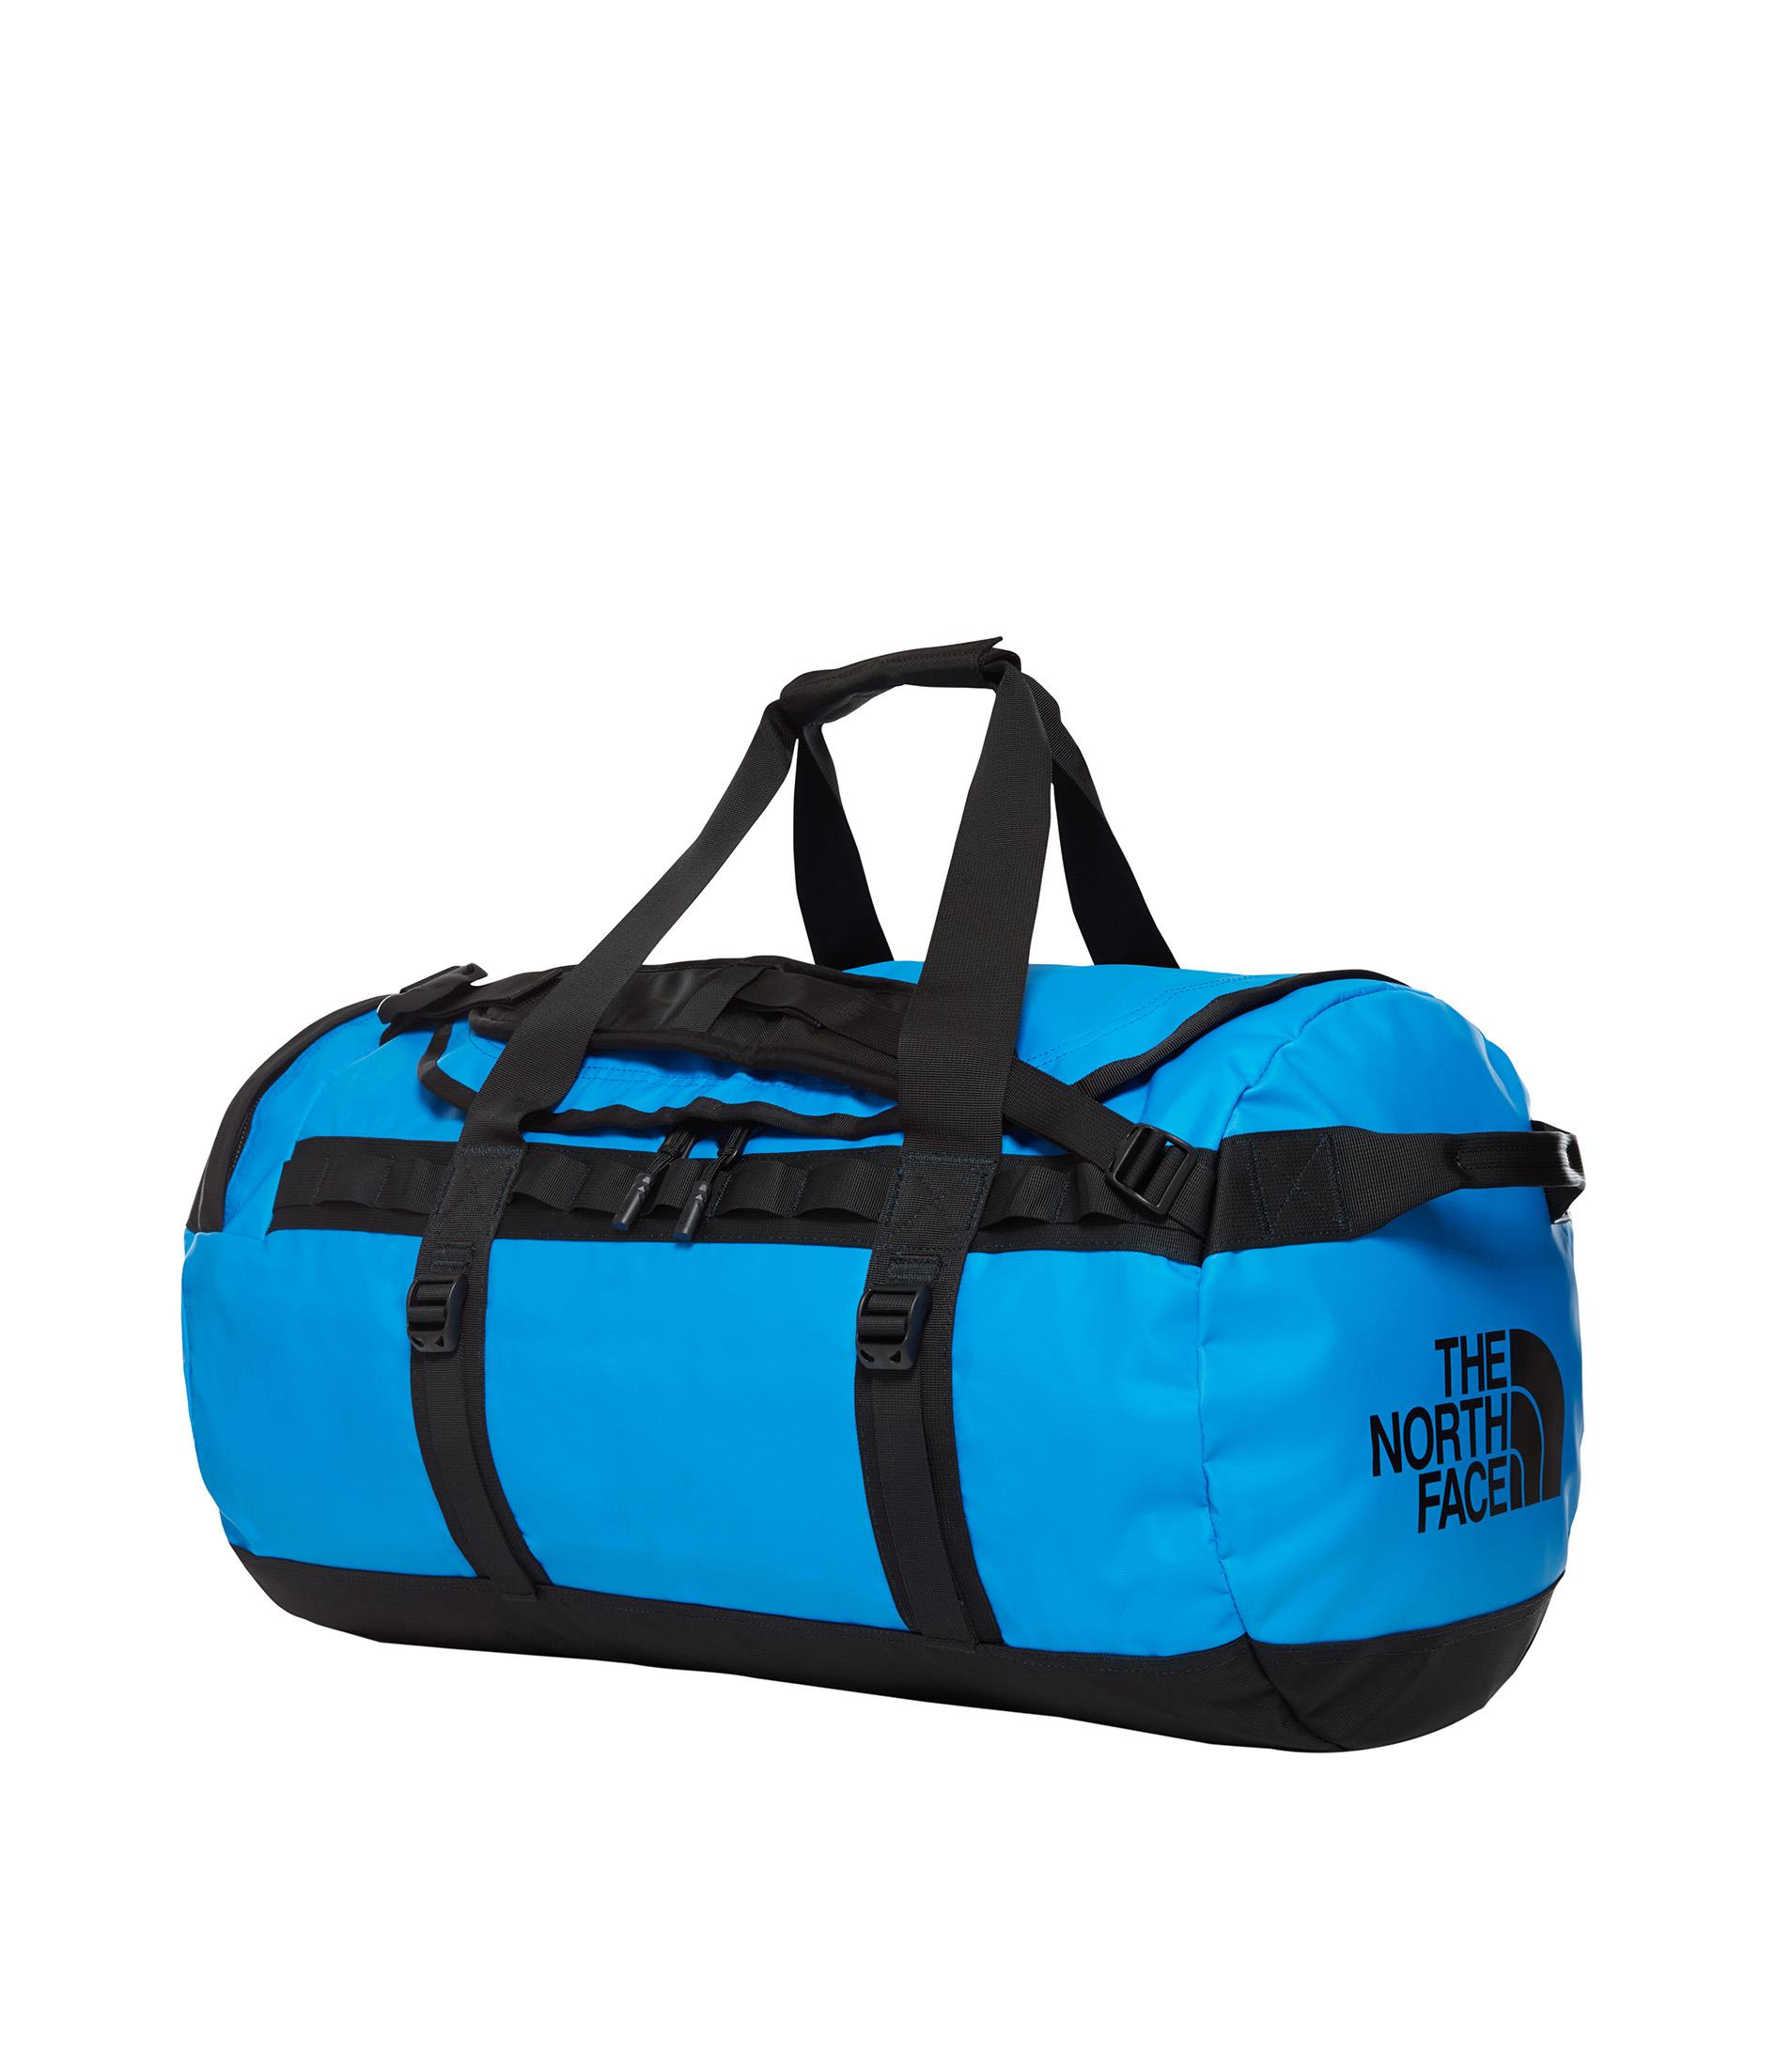 The Northface Base Camp Duffel - Erkek T93Etpsa9 Çanta